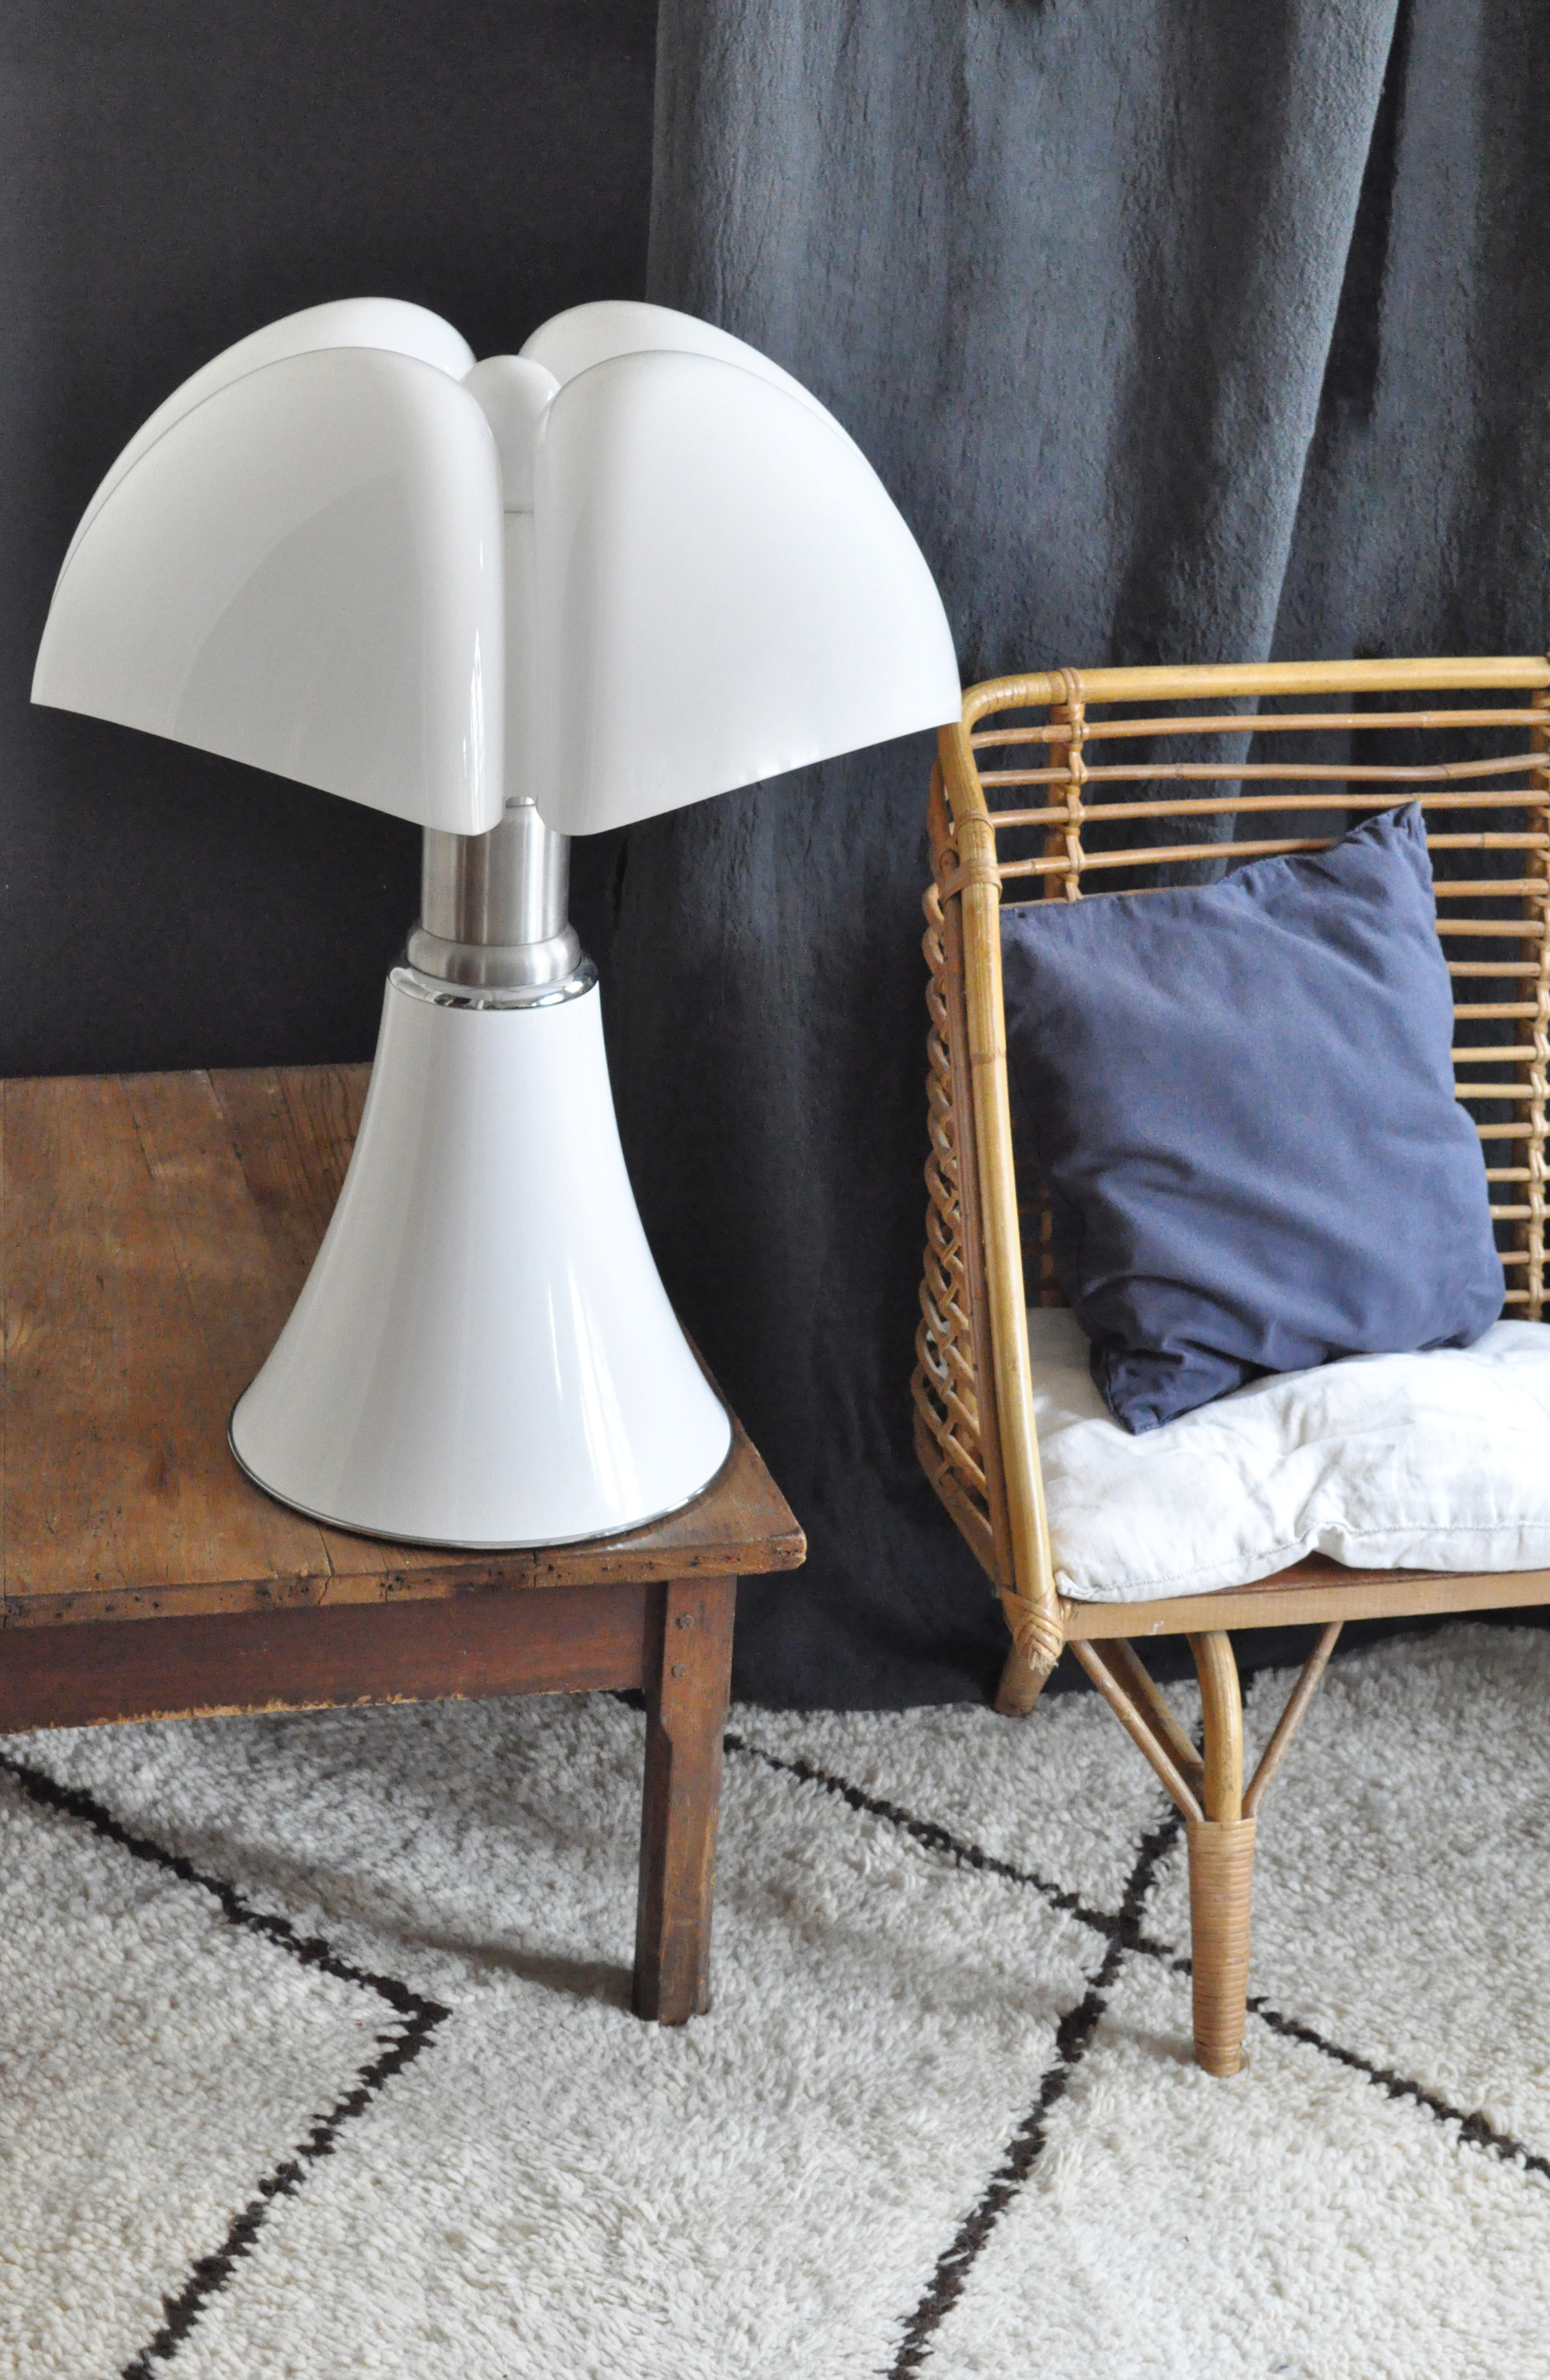 lampe pipistrello le vide grenier d 39 une parisienne. Black Bedroom Furniture Sets. Home Design Ideas